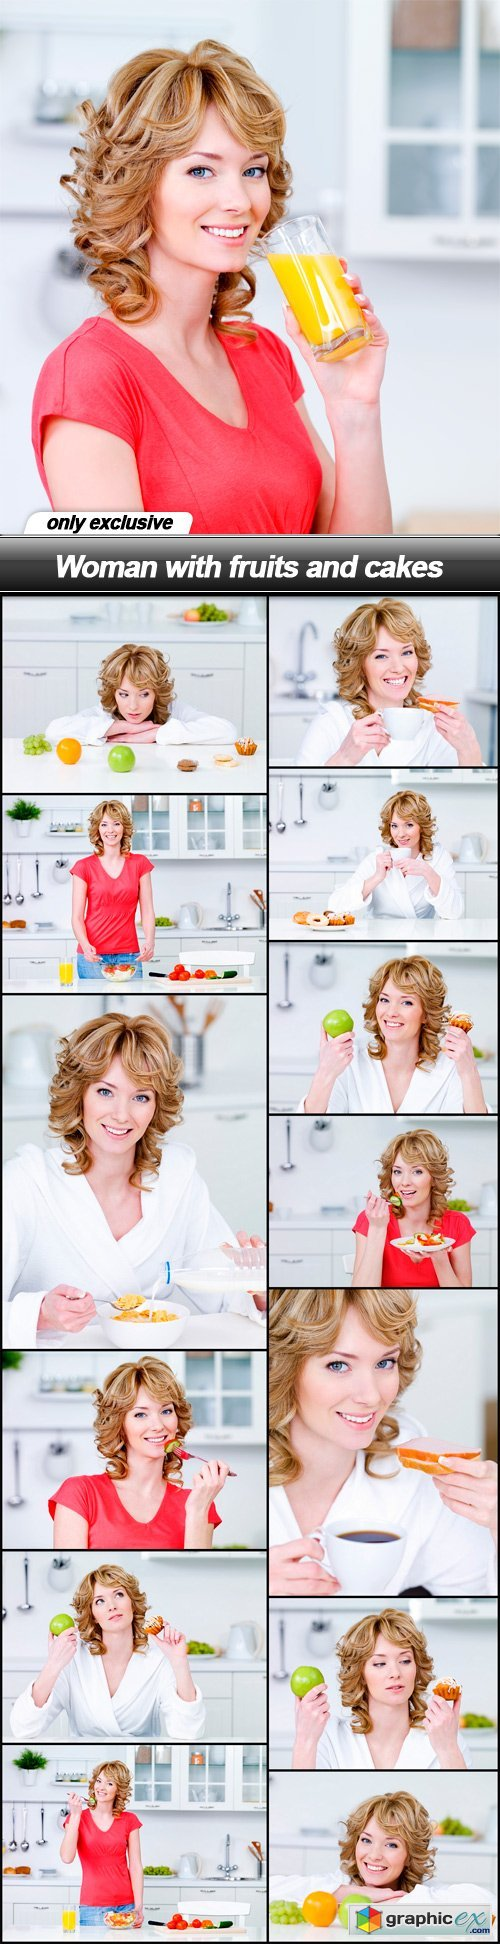 Woman with fruits and cakes - 14 UHQ JPEG